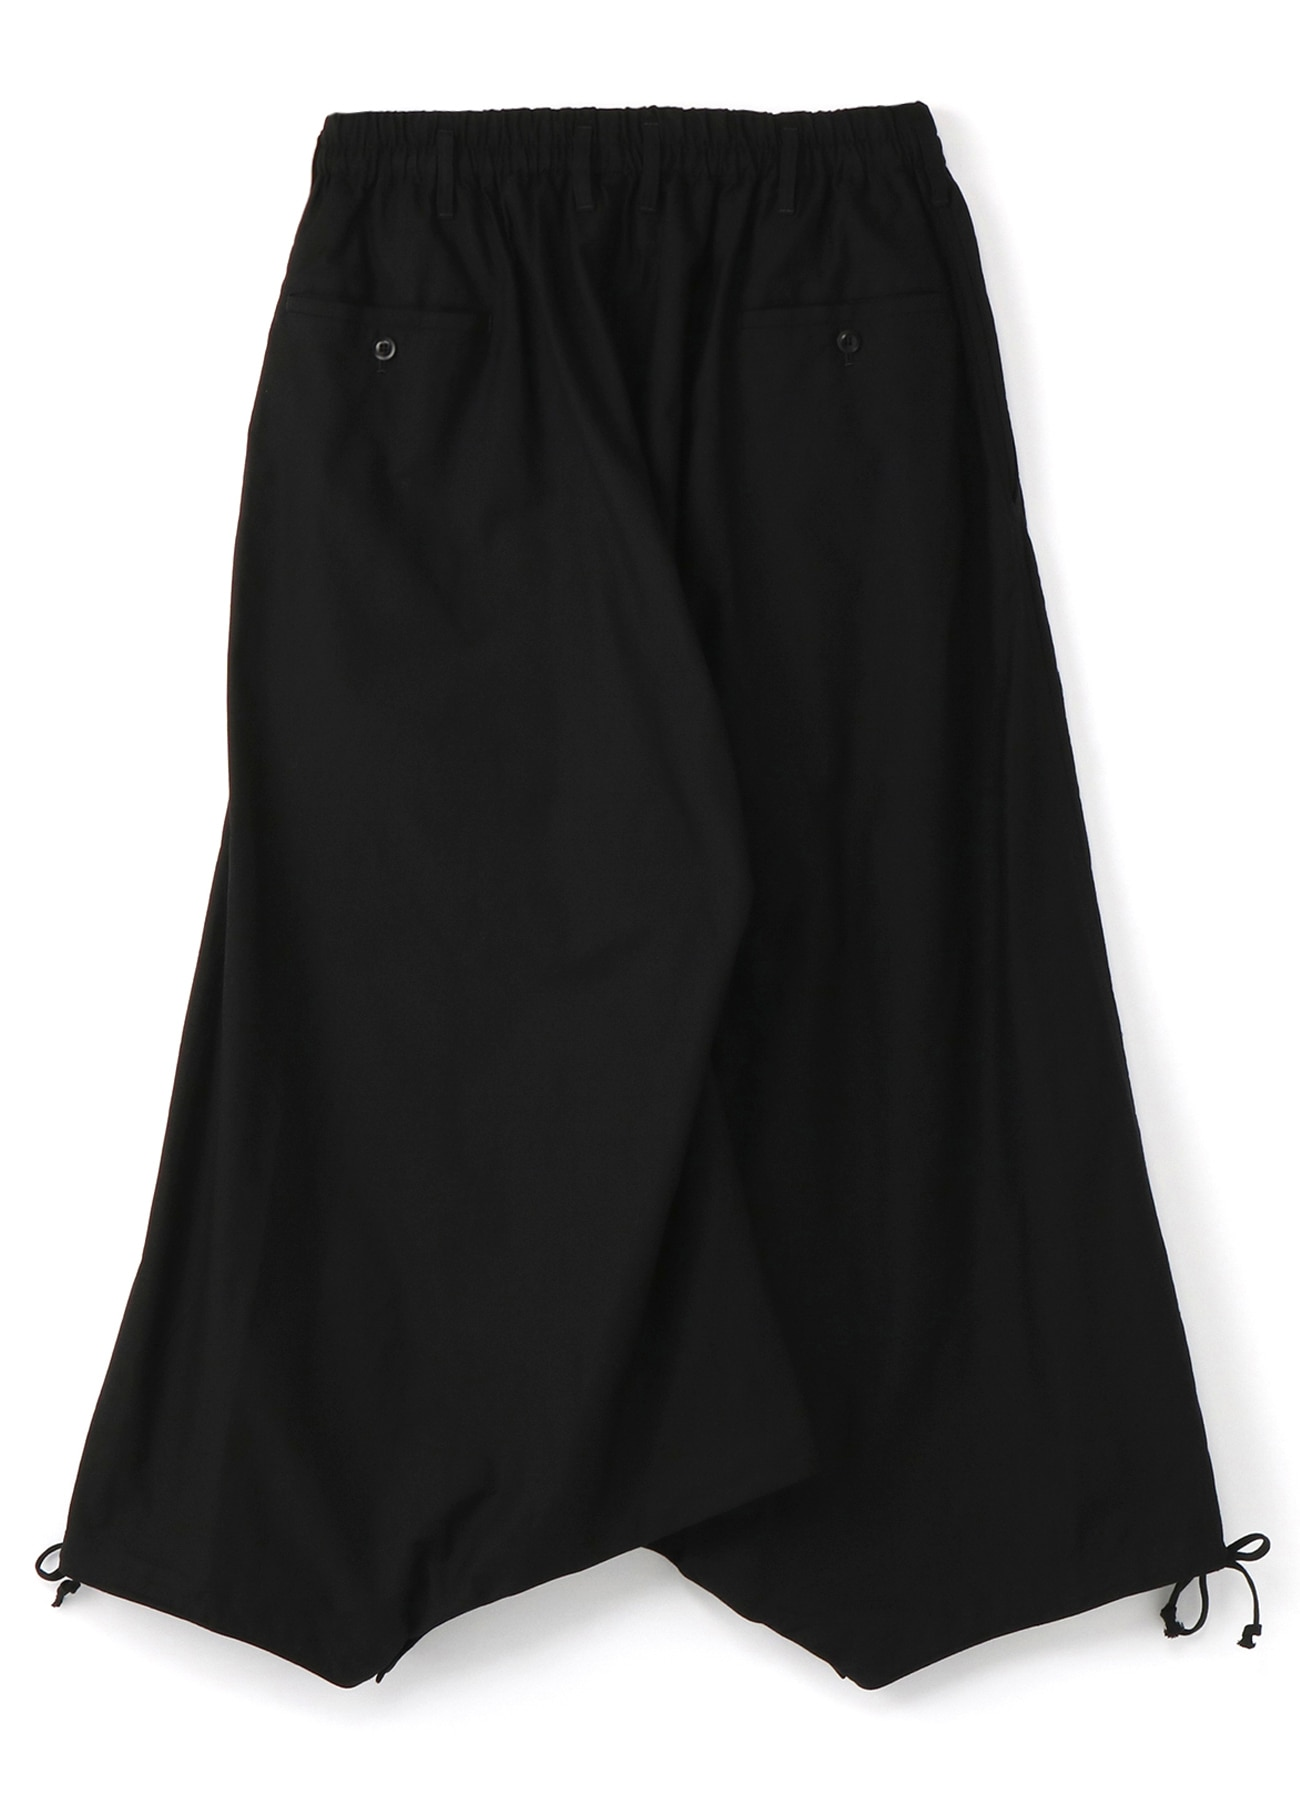 No.12 Transforming Skirt Pants Cotton Twill - Thick